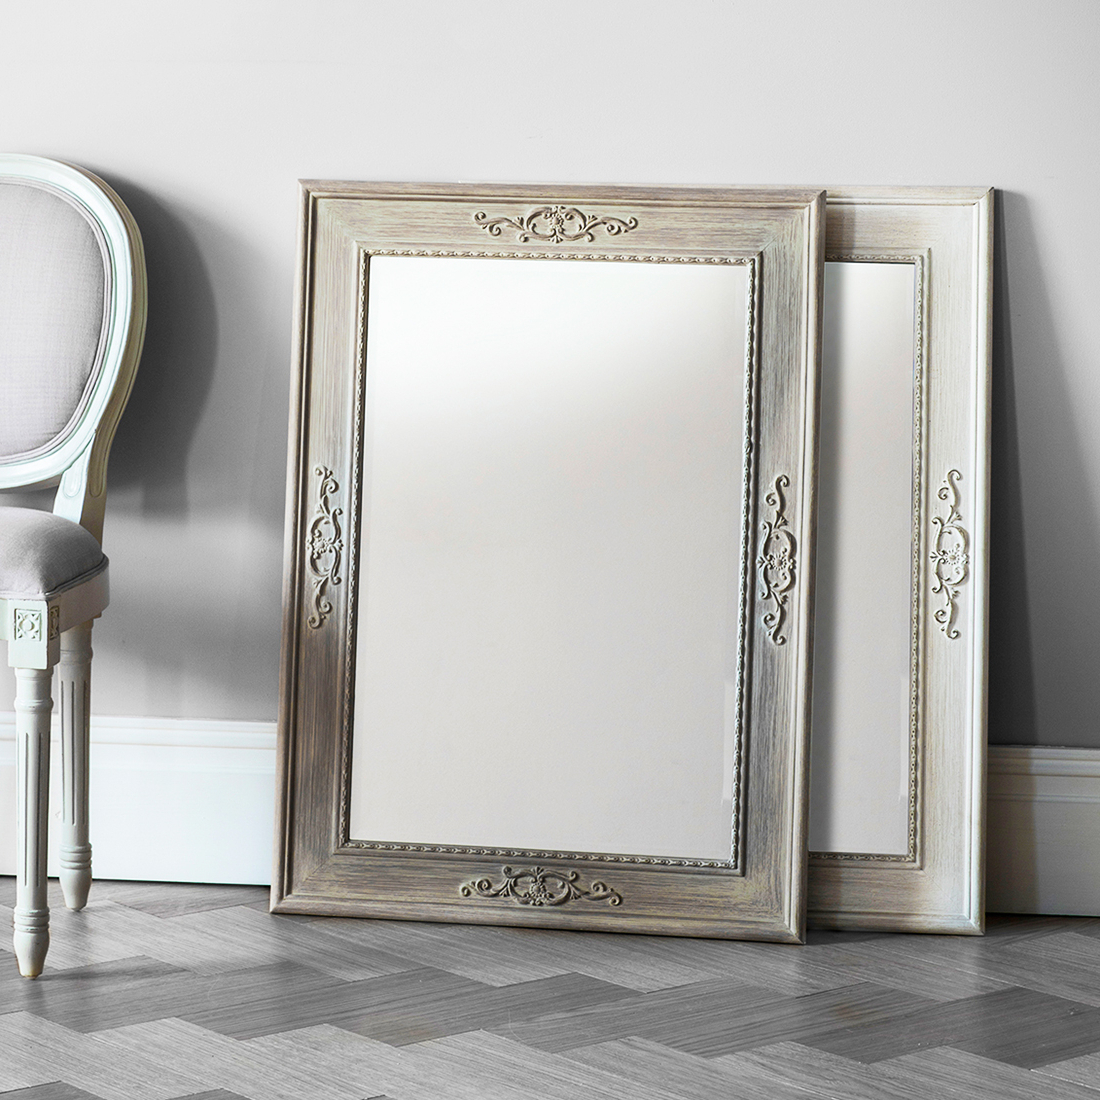 Decorative Rectangular Wooden Wall Mirrors – White Or Limed Oak In Most Recently Released Wooden Framed Wall Mirrors (View 16 of 20)